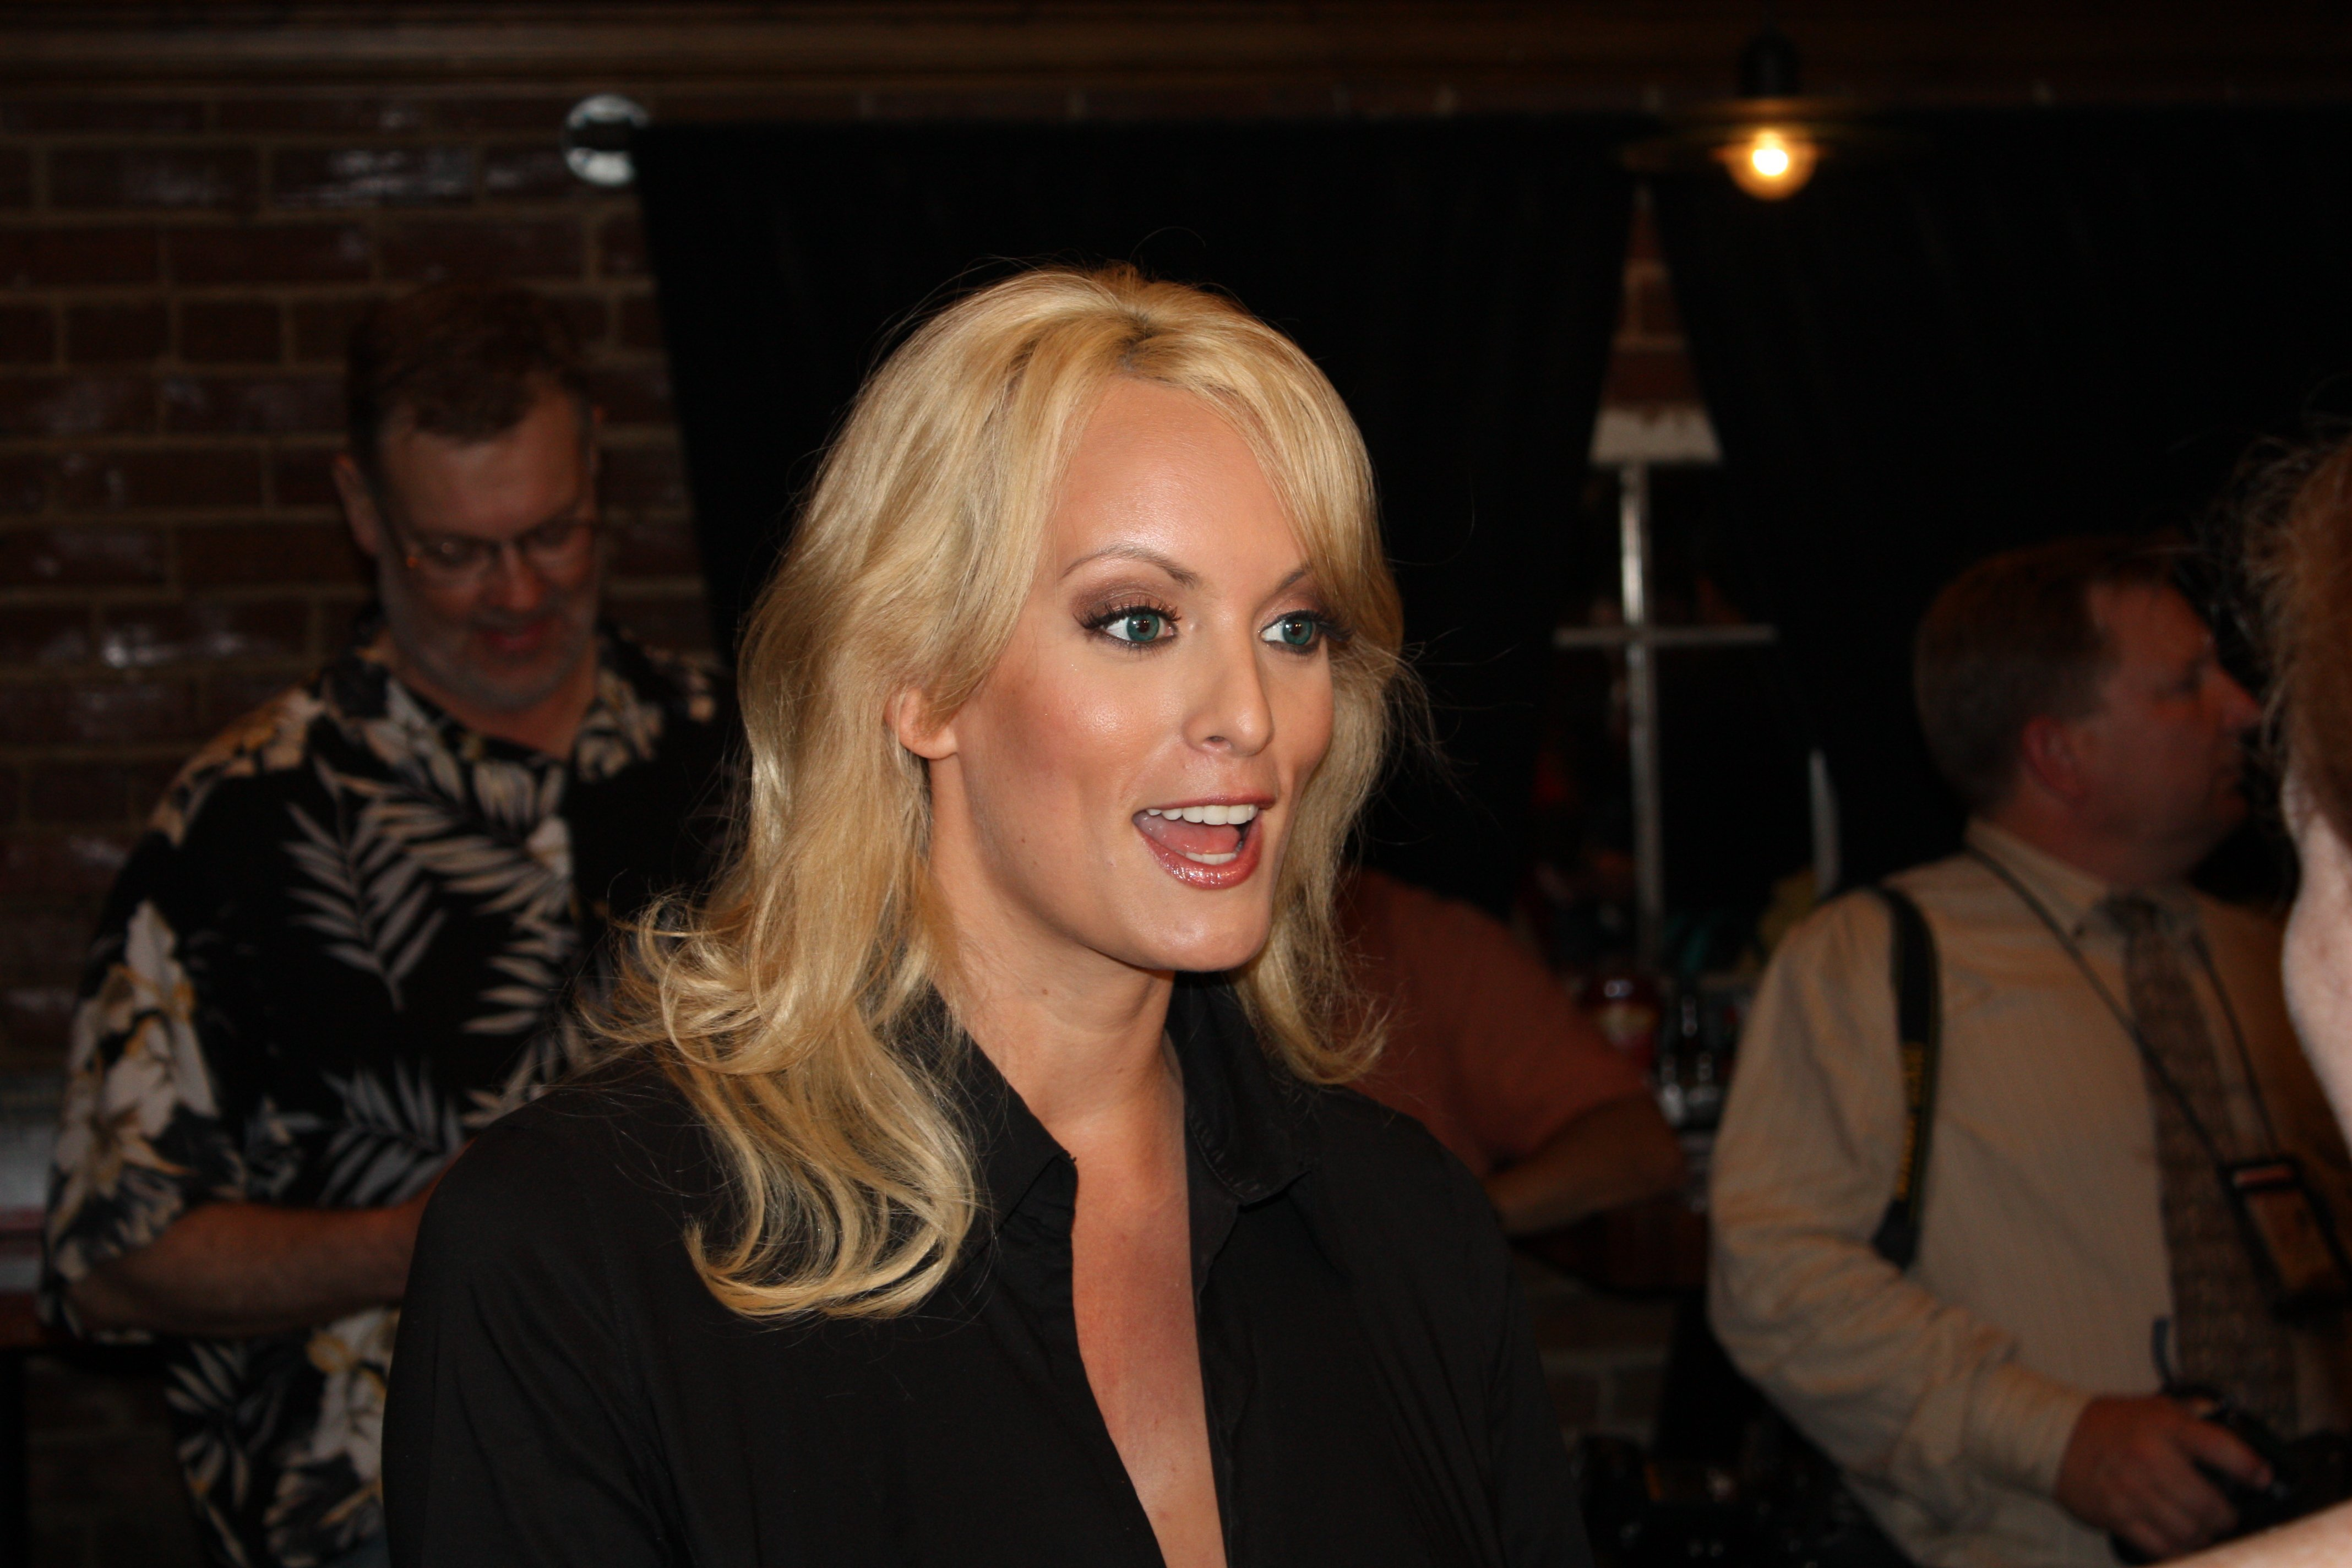 On Tuesday, porn star Stormy Daniels sued President Donald Trump and his attorney Michael Cohen.